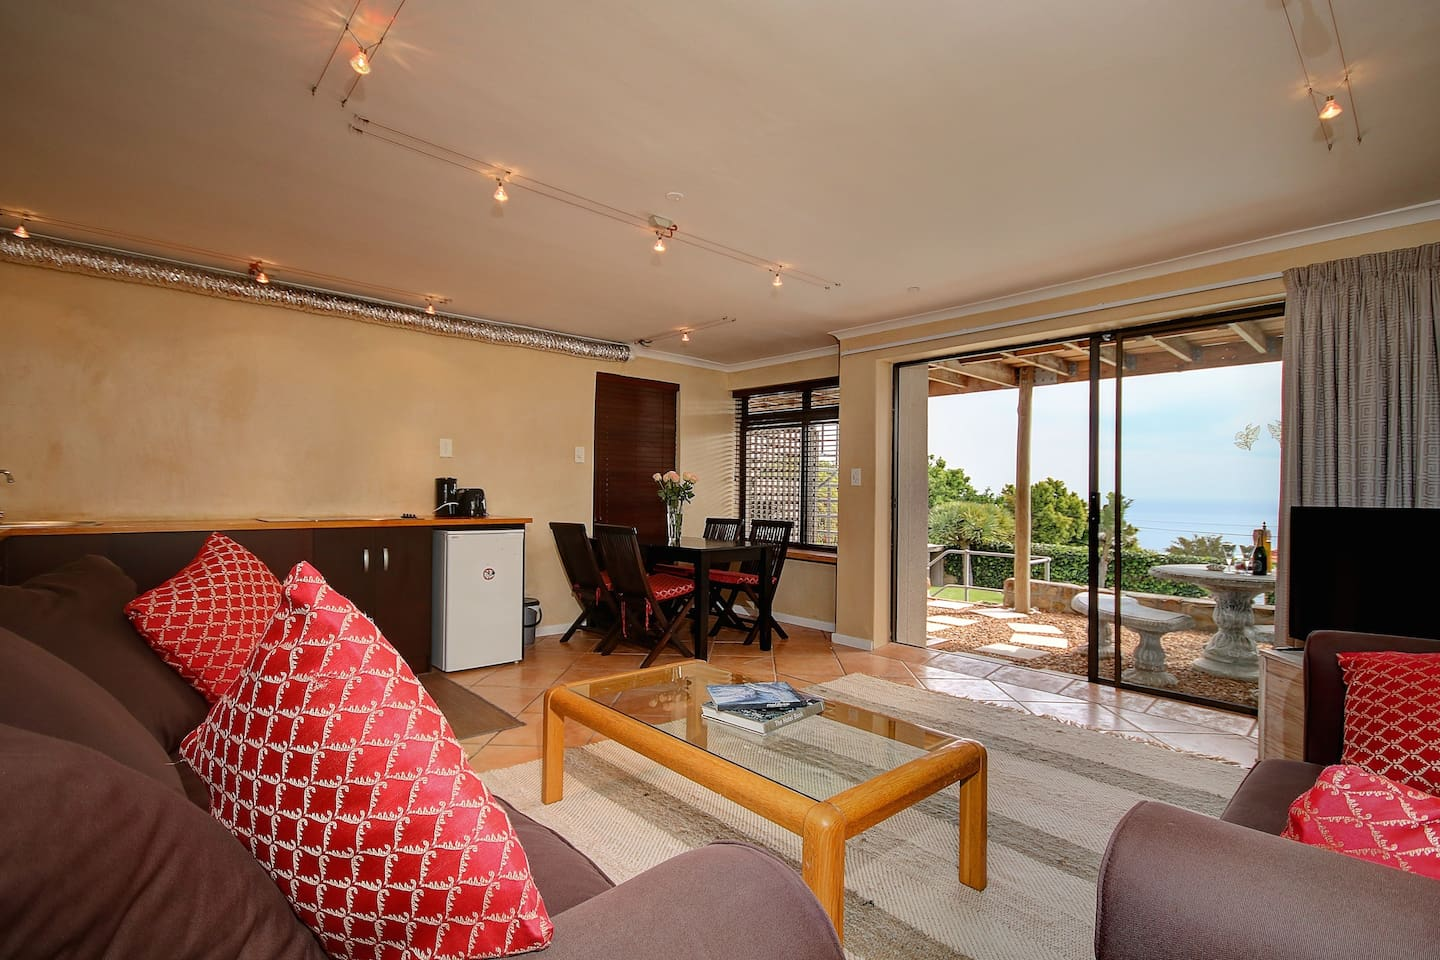 Private, Spacious, Open Plan Apartment with Large Sea View Patio